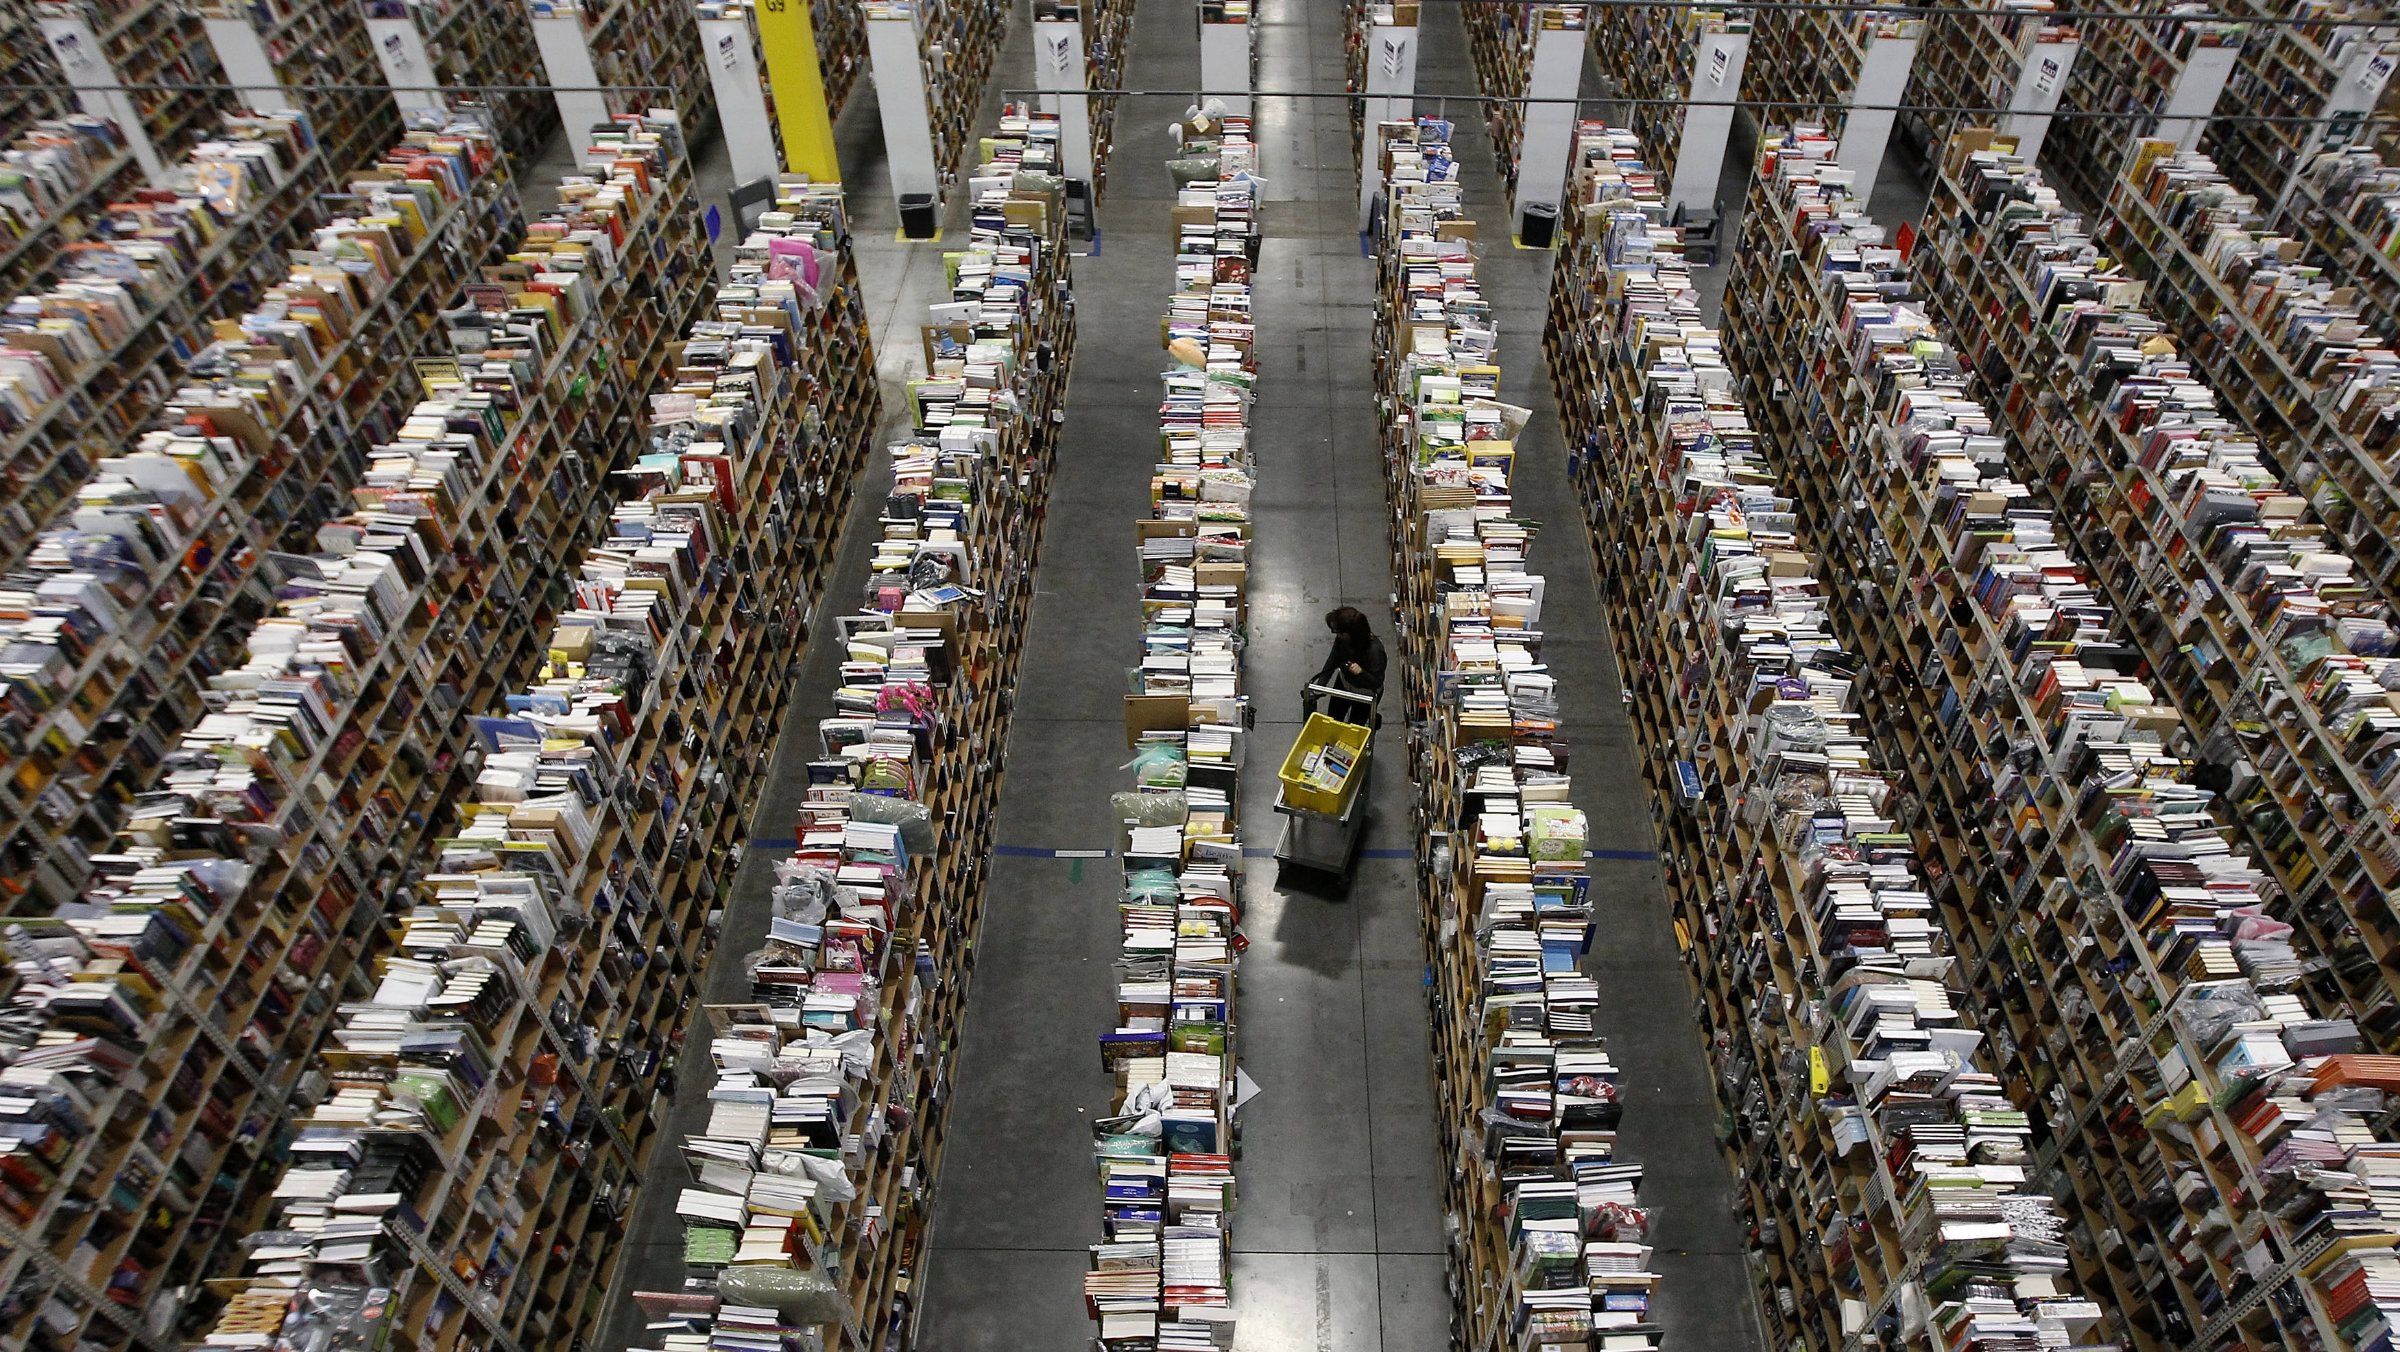 A worker gathers items for delivery from the warehouse floor at Amazon's distribution center in Phoenix, Arizona